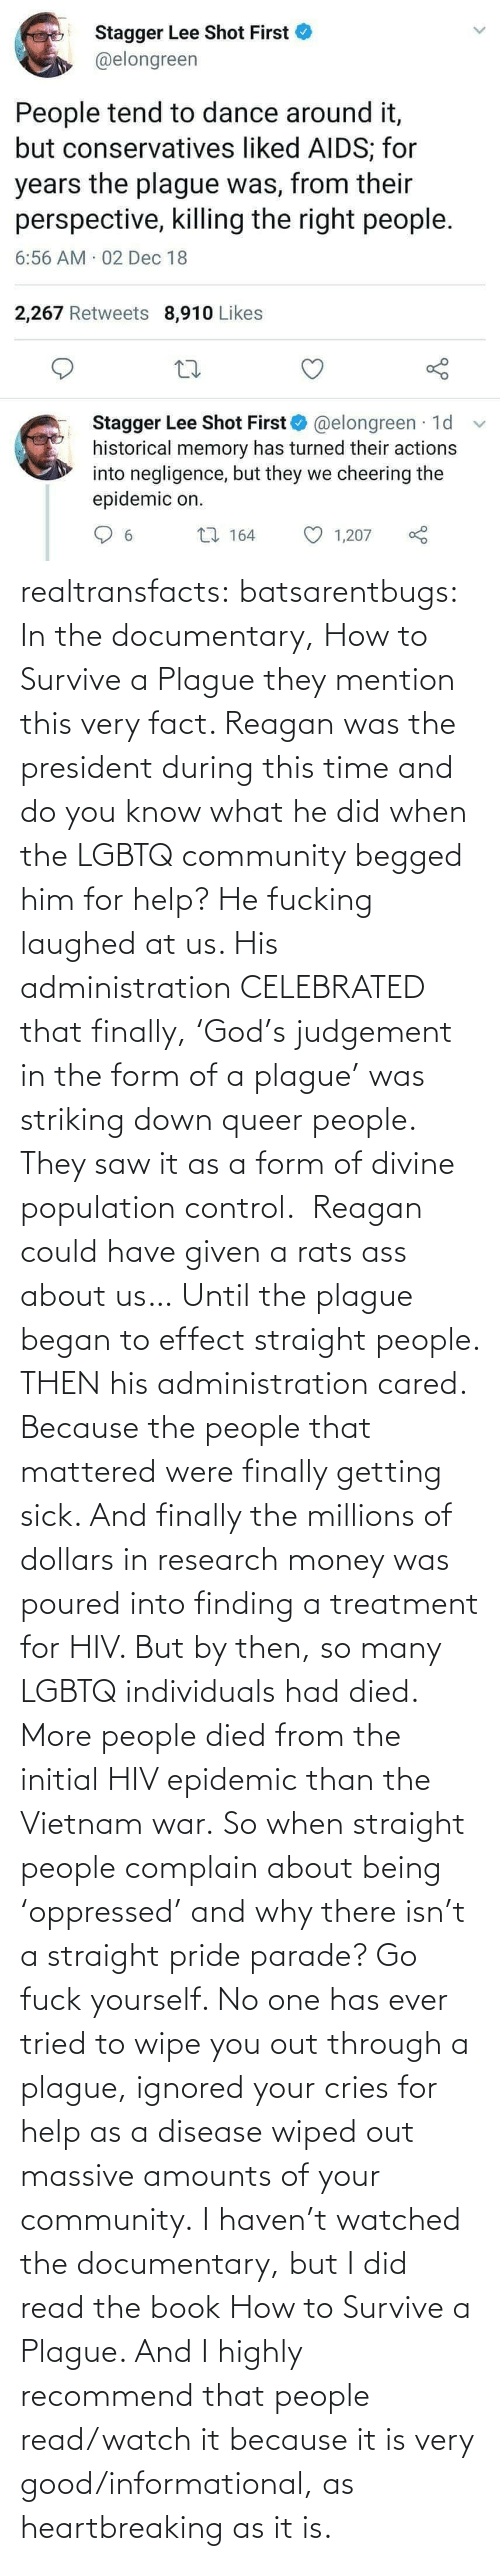 lee: Stagger Lee Shot First  @elongreen  People tend to dance around it,  but conservatives liked AIDS; for  years the plague was, from their  perspective, killing the right people.  6:56 AM 02 Dec 18  2,267 Retweets 8,910 Likes  Stagger Lee Shot First O @elongreen · 1d  historical memory has turned their actions  into negligence, but they we cheering the  epidemic on.  27 164  1,207  6. realtransfacts:  batsarentbugs:  In the documentary, How to Survive a Plague they mention this very fact. Reagan was the president during this time and do you know what he did when the LGBTQ community begged him for help? He fucking laughed at us. His administration CELEBRATED that finally, 'God's judgement in the form of a plague' was striking down queer people.  They saw it as a form of divine population control.  Reagan could have given a rats ass about us… Until the plague began to effect straight people. THEN his administration cared. Because the people that mattered were finally getting sick. And finally the millions of dollars in research money was poured into finding a treatment for HIV. But by then, so many LGBTQ individuals had died.  More people died from the initial HIV epidemic than the Vietnam war. So when straight people complain about being 'oppressed' and why there isn't a straight pride parade? Go fuck yourself. No one has ever tried to wipe you out through a plague, ignored your cries for help as a disease wiped out massive amounts of your community.  I haven't watched the documentary, but I did read the book  How to Survive a Plague. And I highly recommend that people read/watch it because it is very good/informational, as heartbreaking as it is.